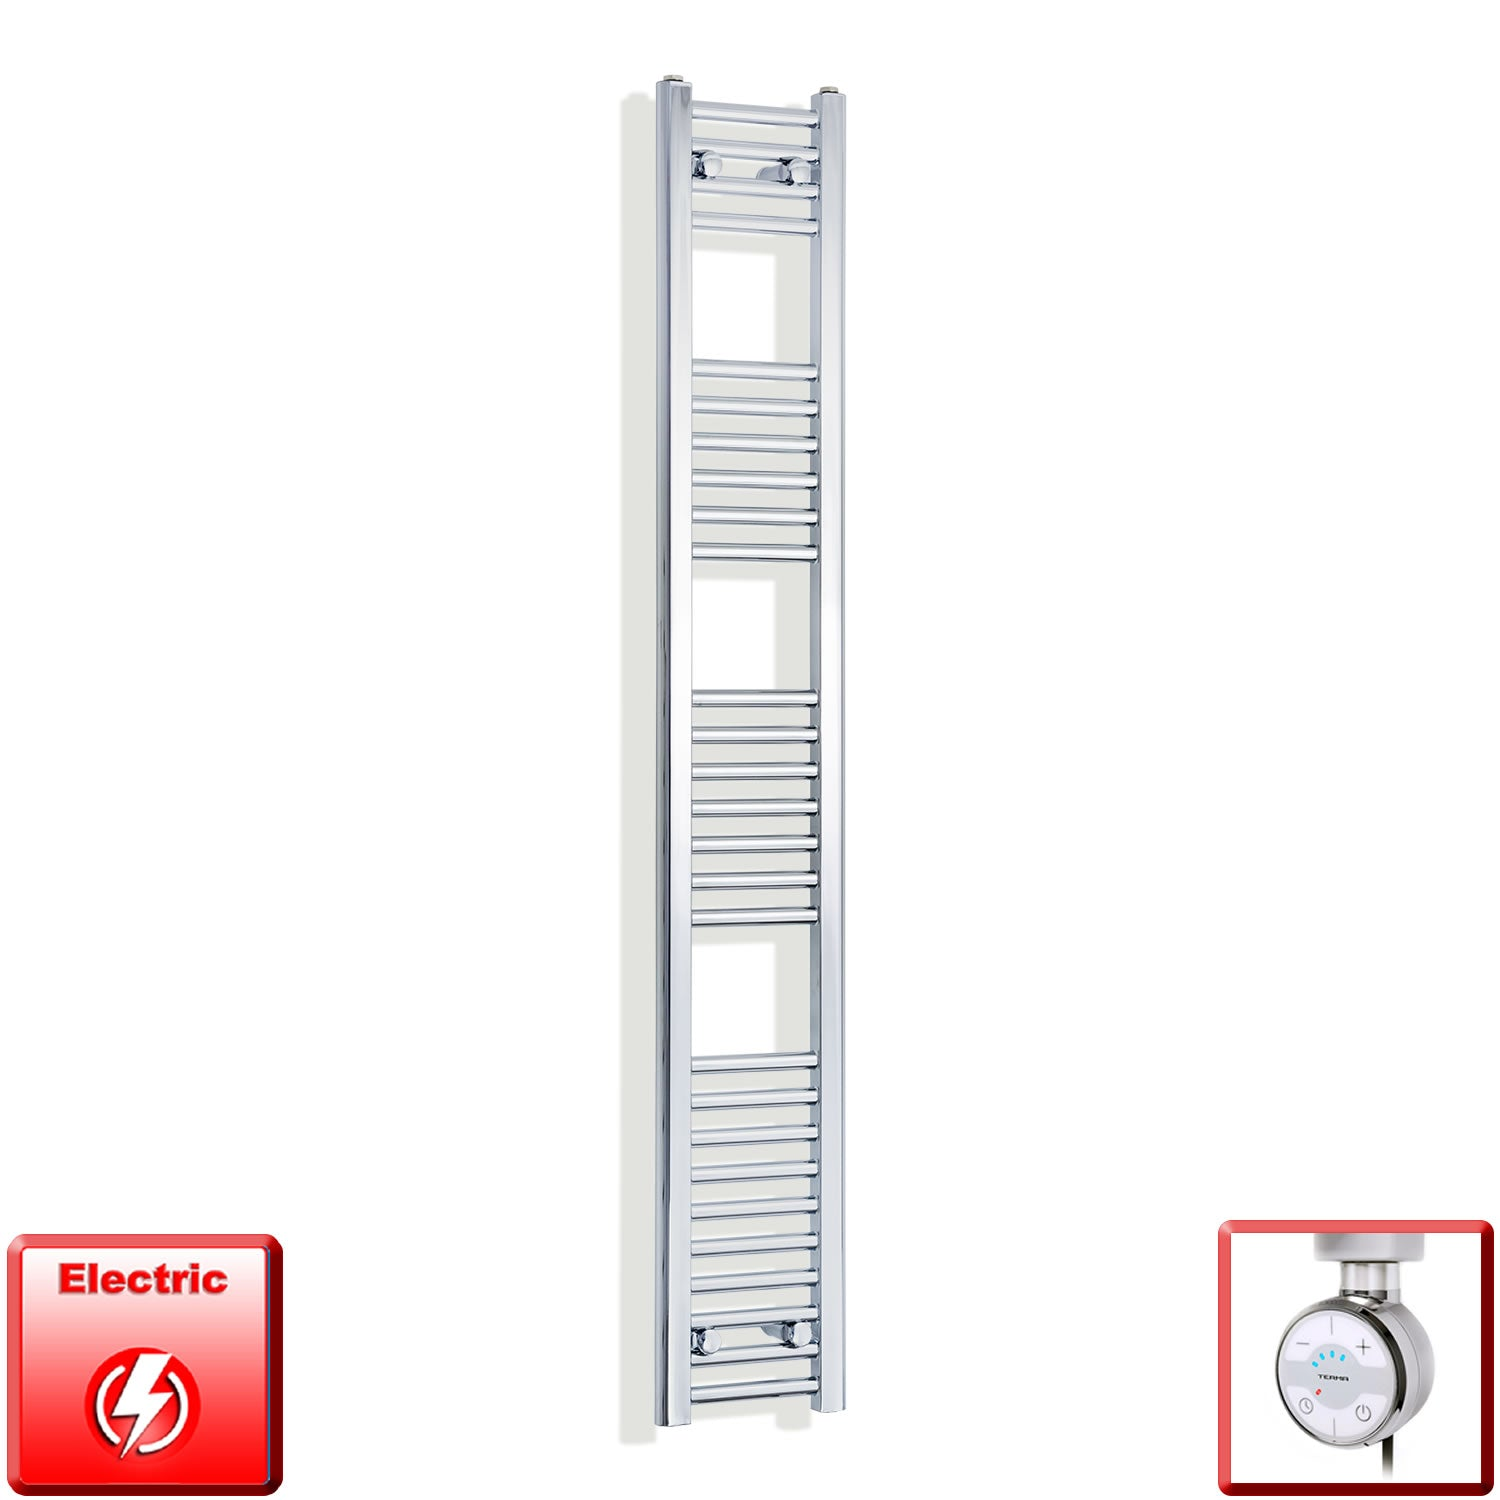 200mm Wide 1600mm High Pre-Filled Chrome Electric Towel Rail Radiator With Thermostatic MOA Element